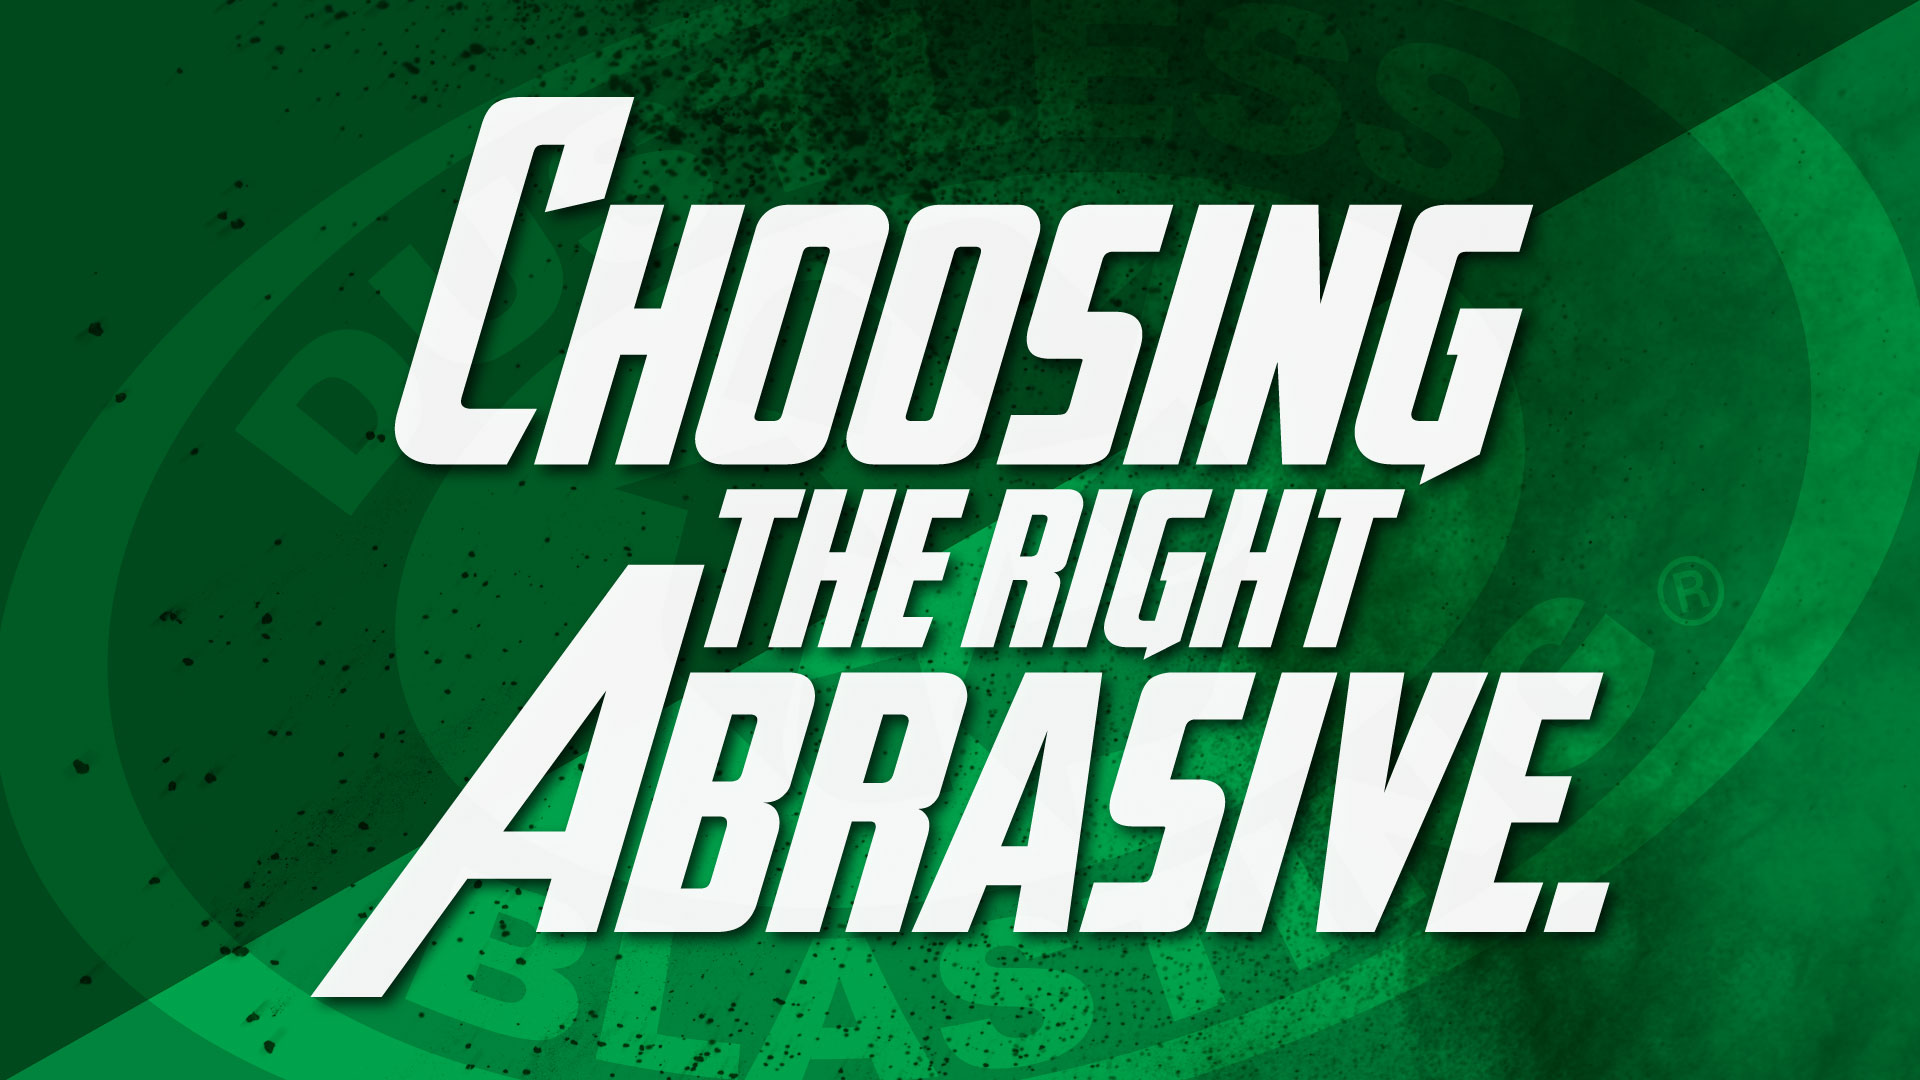 May 17 - Choosing the Right Abrasive